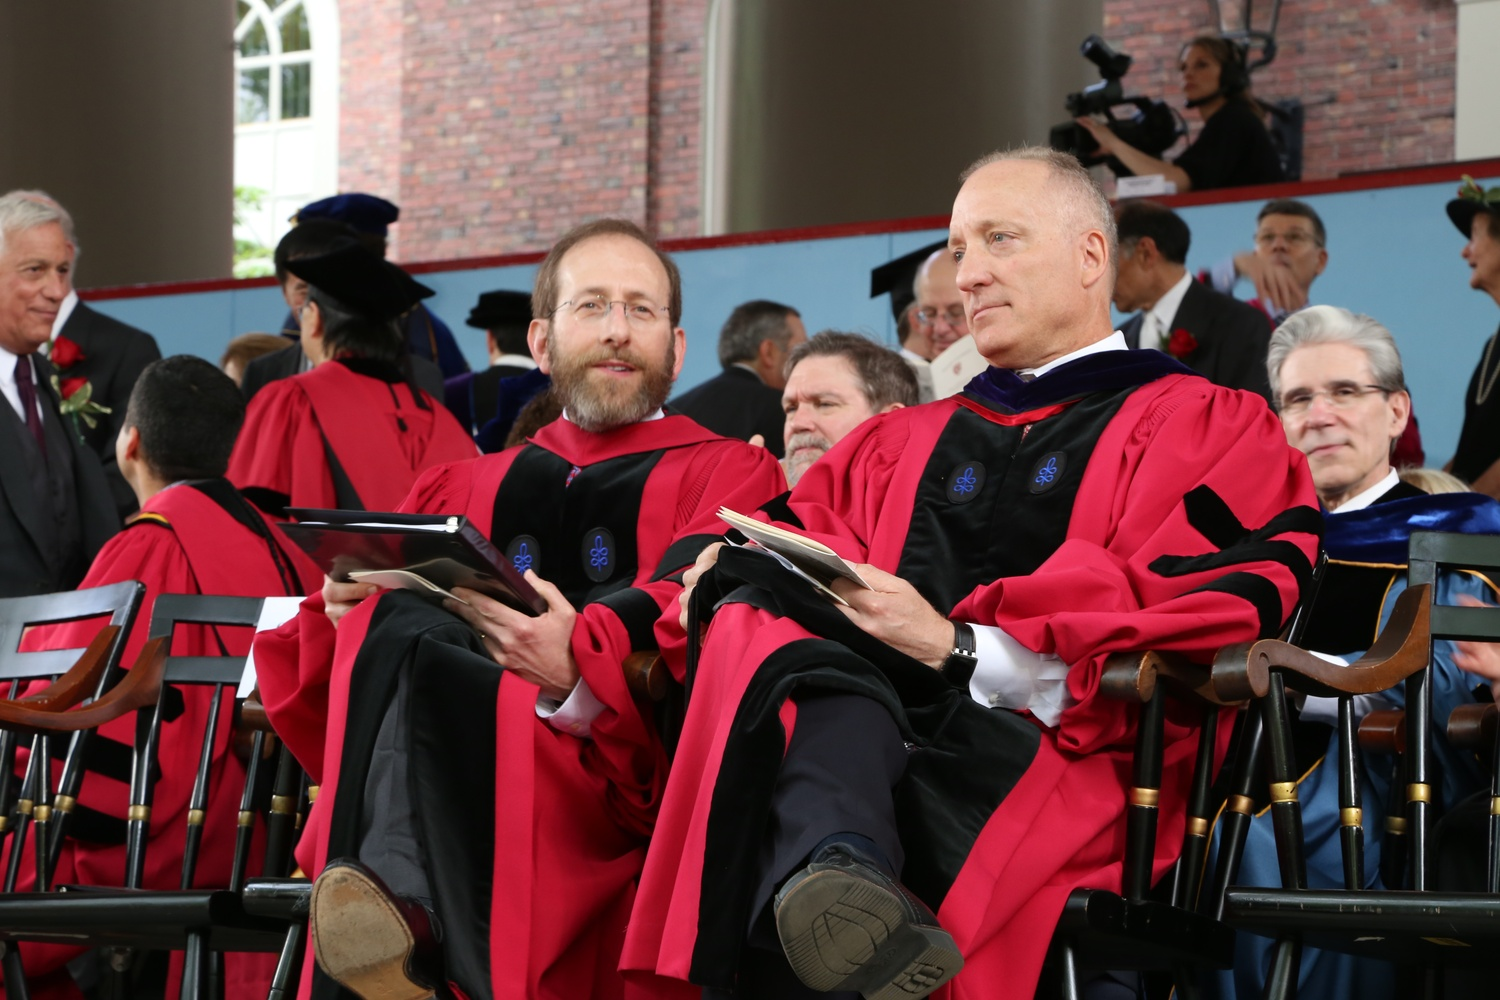 Faculty of Arts and Sciences Dean Michael D. Smith, right, pictured at Commencement 2015.